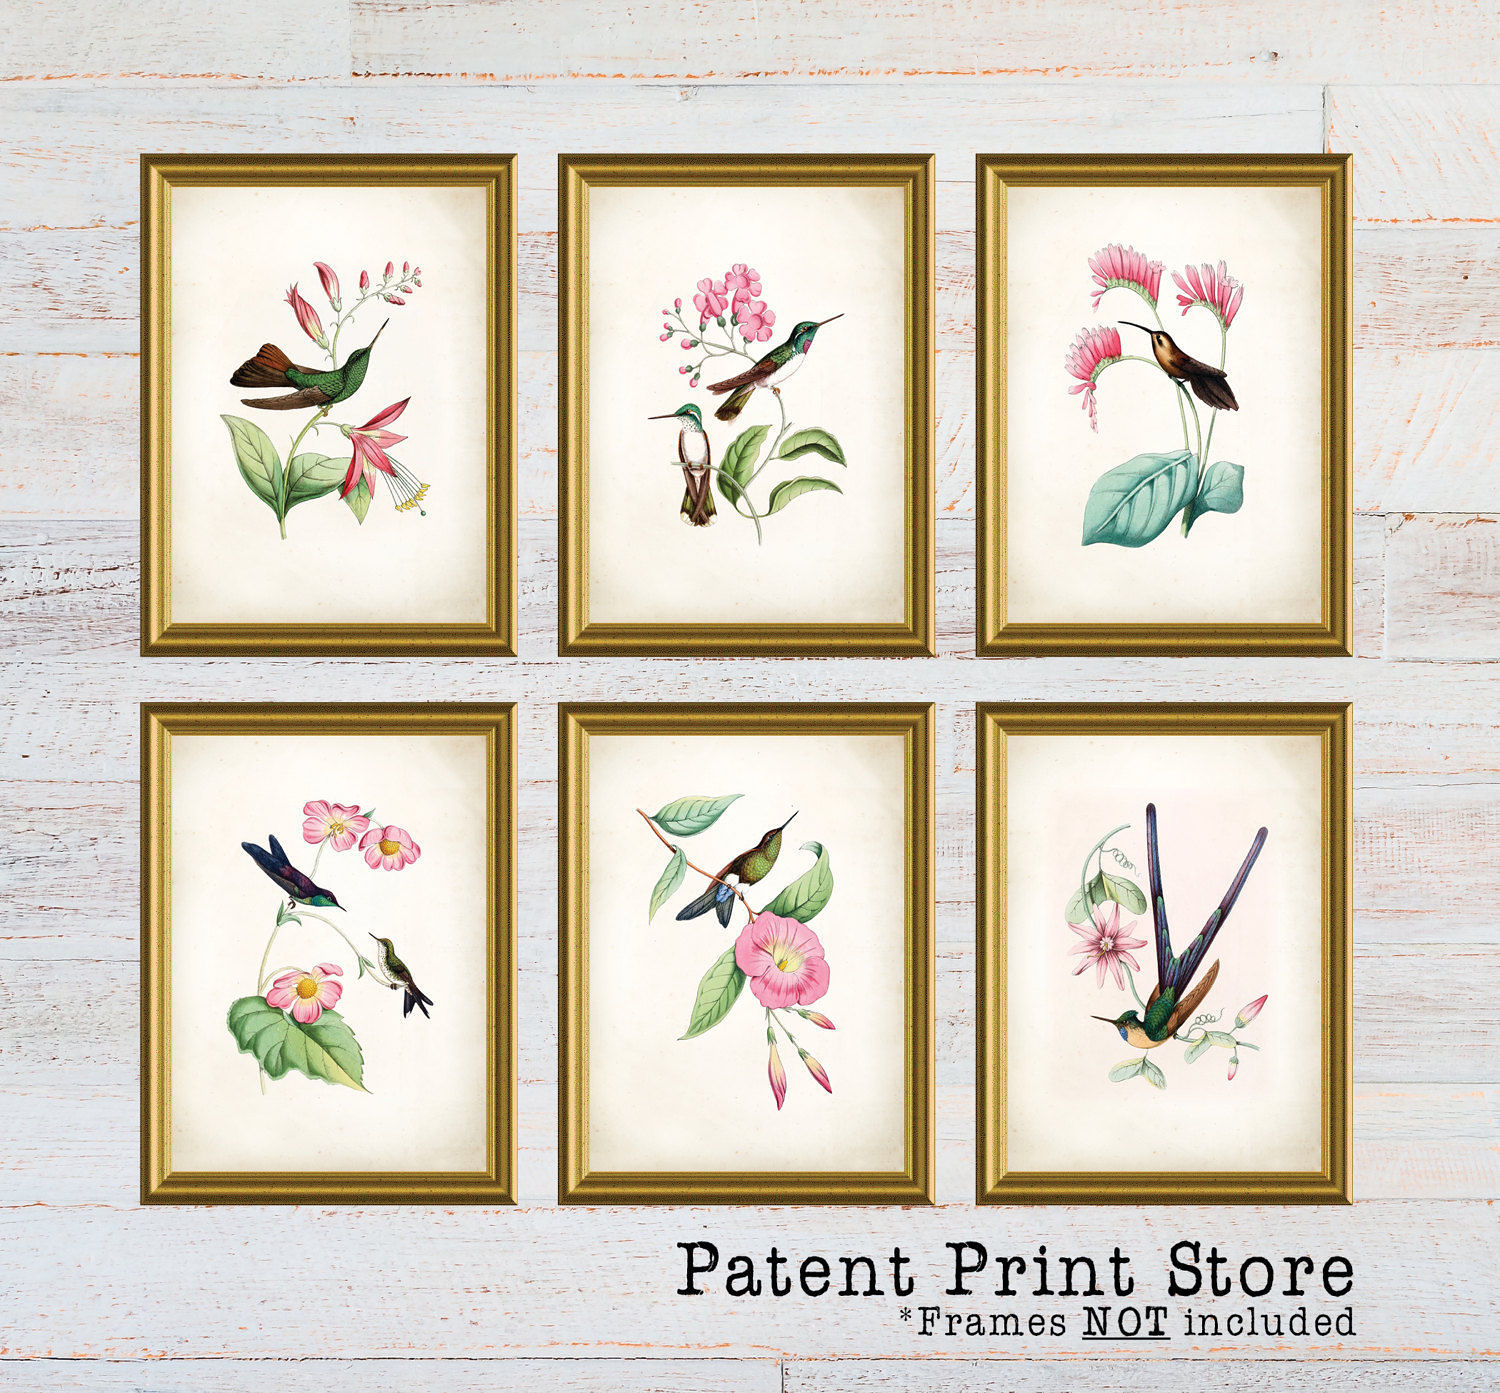 Exceptionnel Hummingbird Art Prints. Hummingbird Print. Hummingbird Art. Bedroom. Bird  Prints. Dining Room Art Prints. Wall Art. Farmhouse Decor. 136